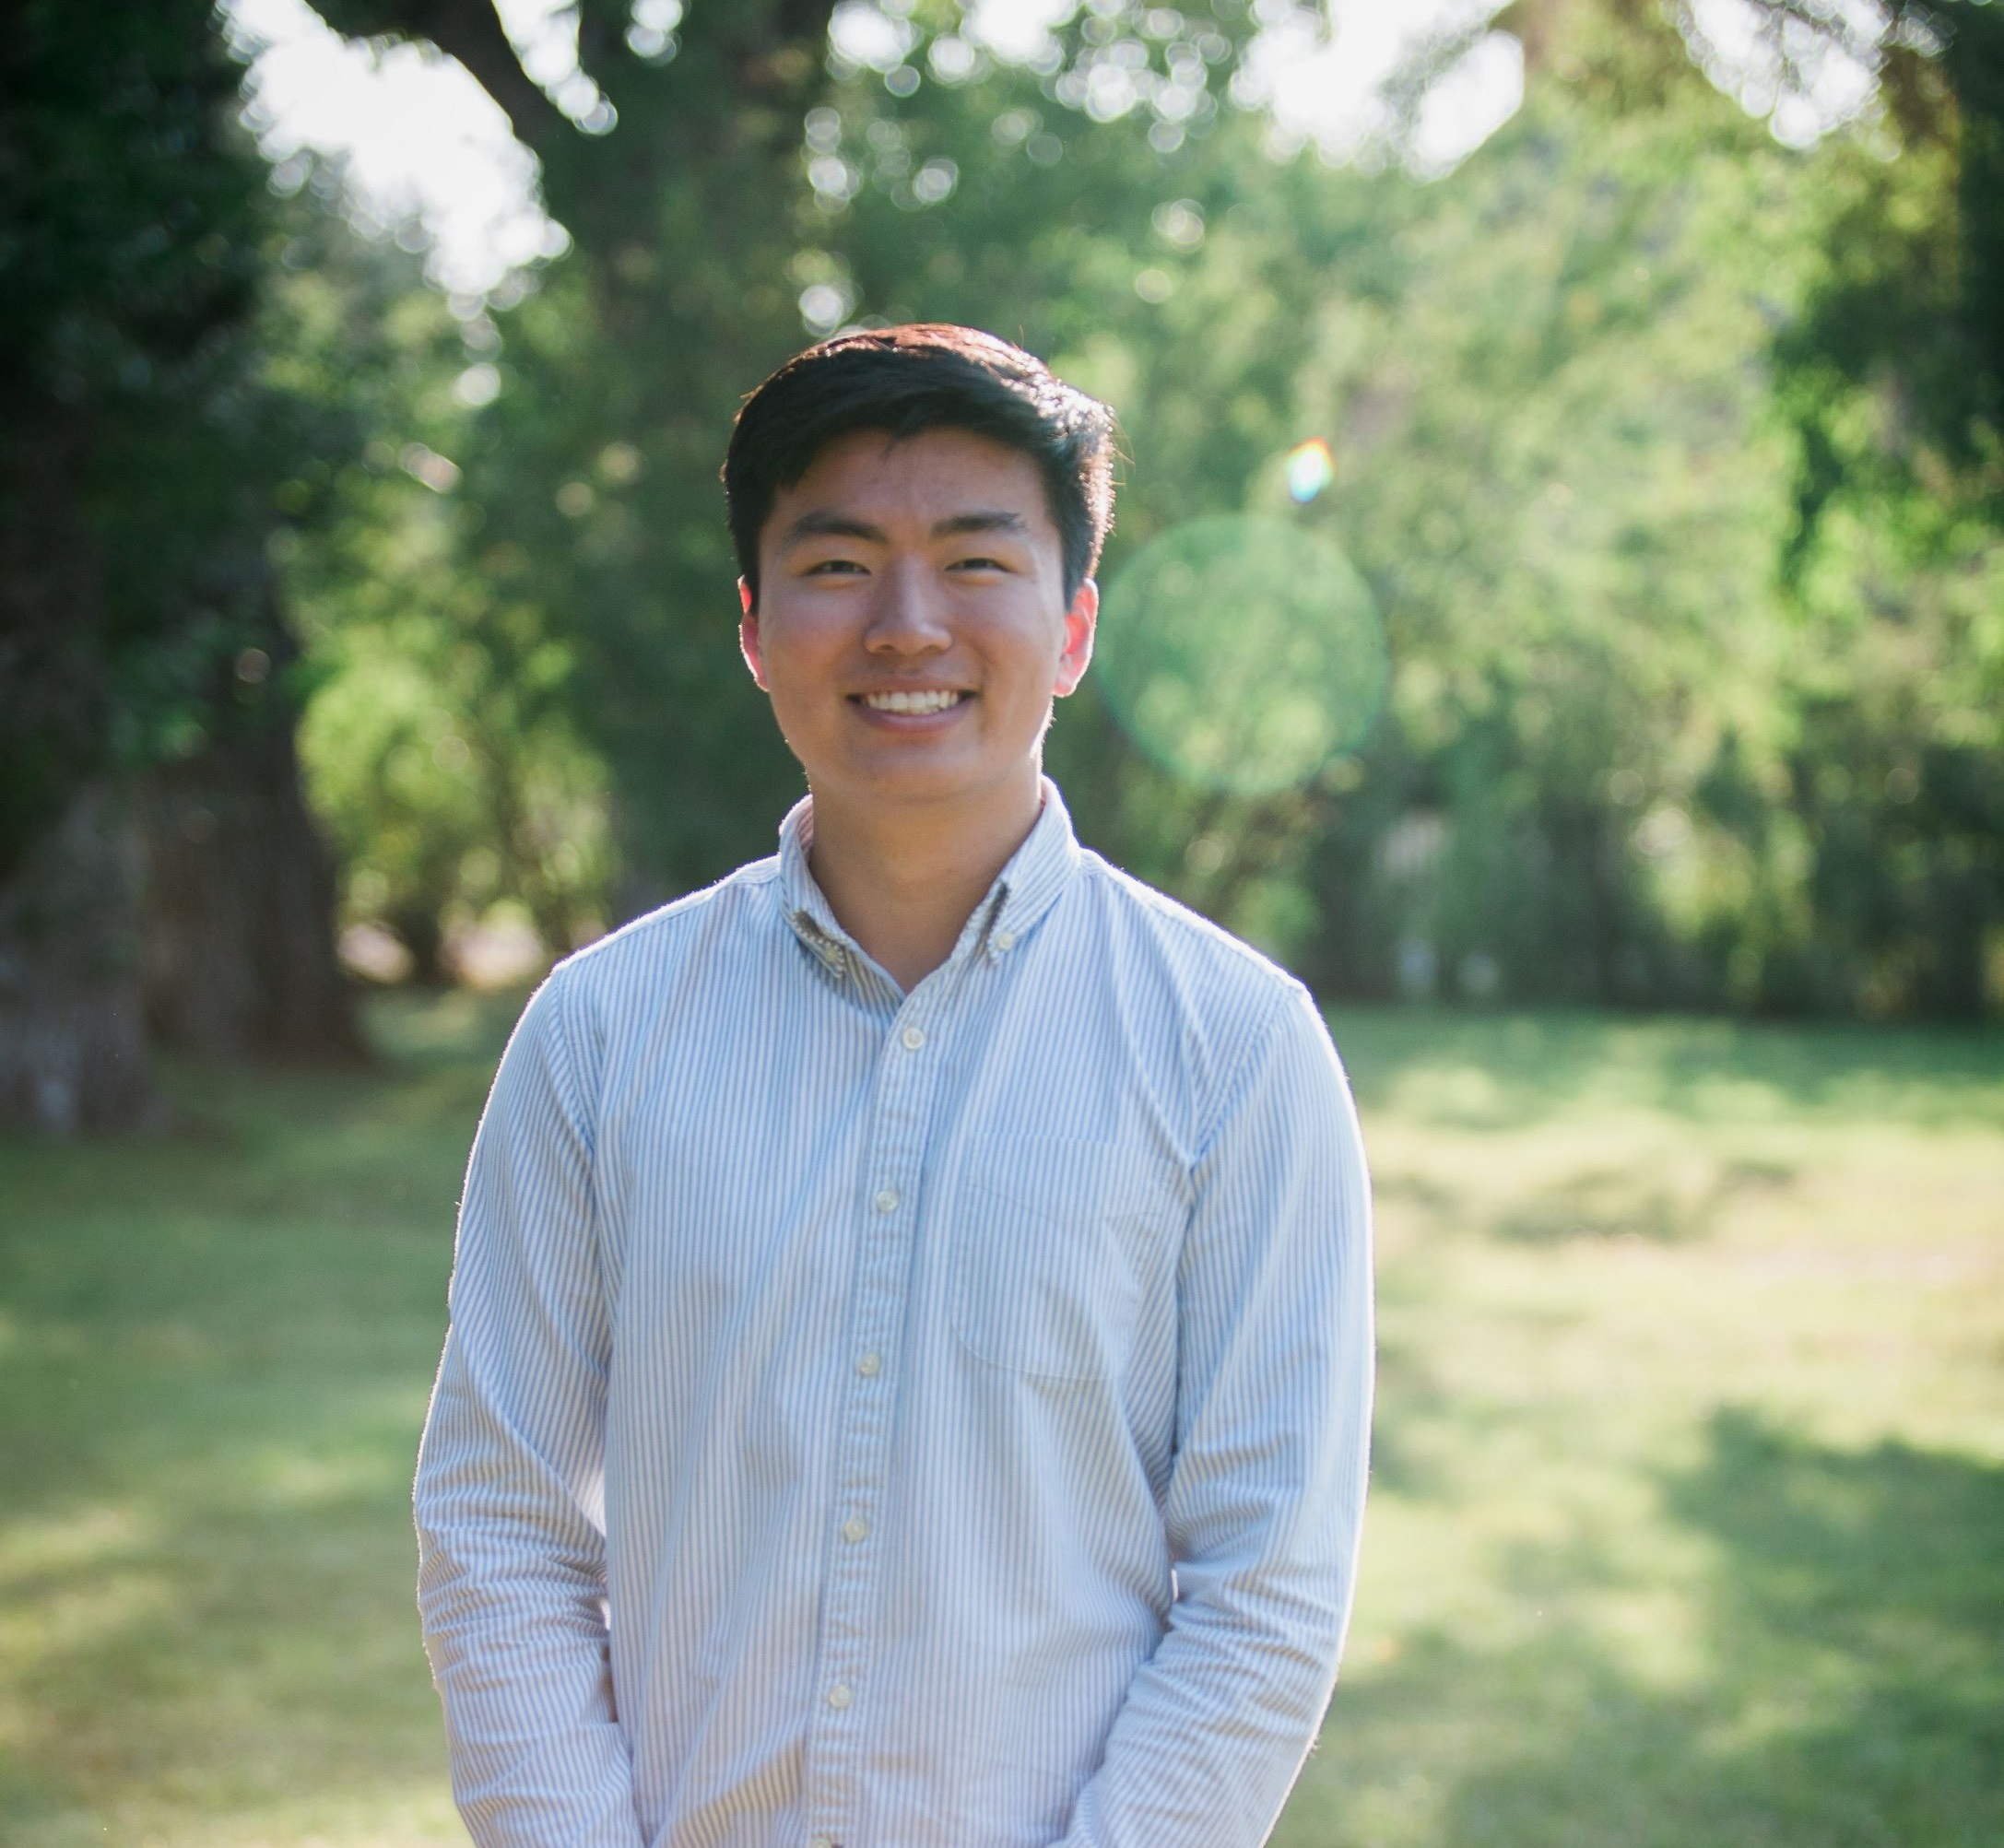 Kevin Seo – Editor   Kevin Seo is a Political Science and International Development Studies student in his last year at McGill. He decided to join the Empathy Journal in order to help create a discussion regarding mental health on campus. When he's not catching up on course readings, Kevin likes to spend his time playing soccer, cheering on the Calgary Flames, and taking mid-day naps.